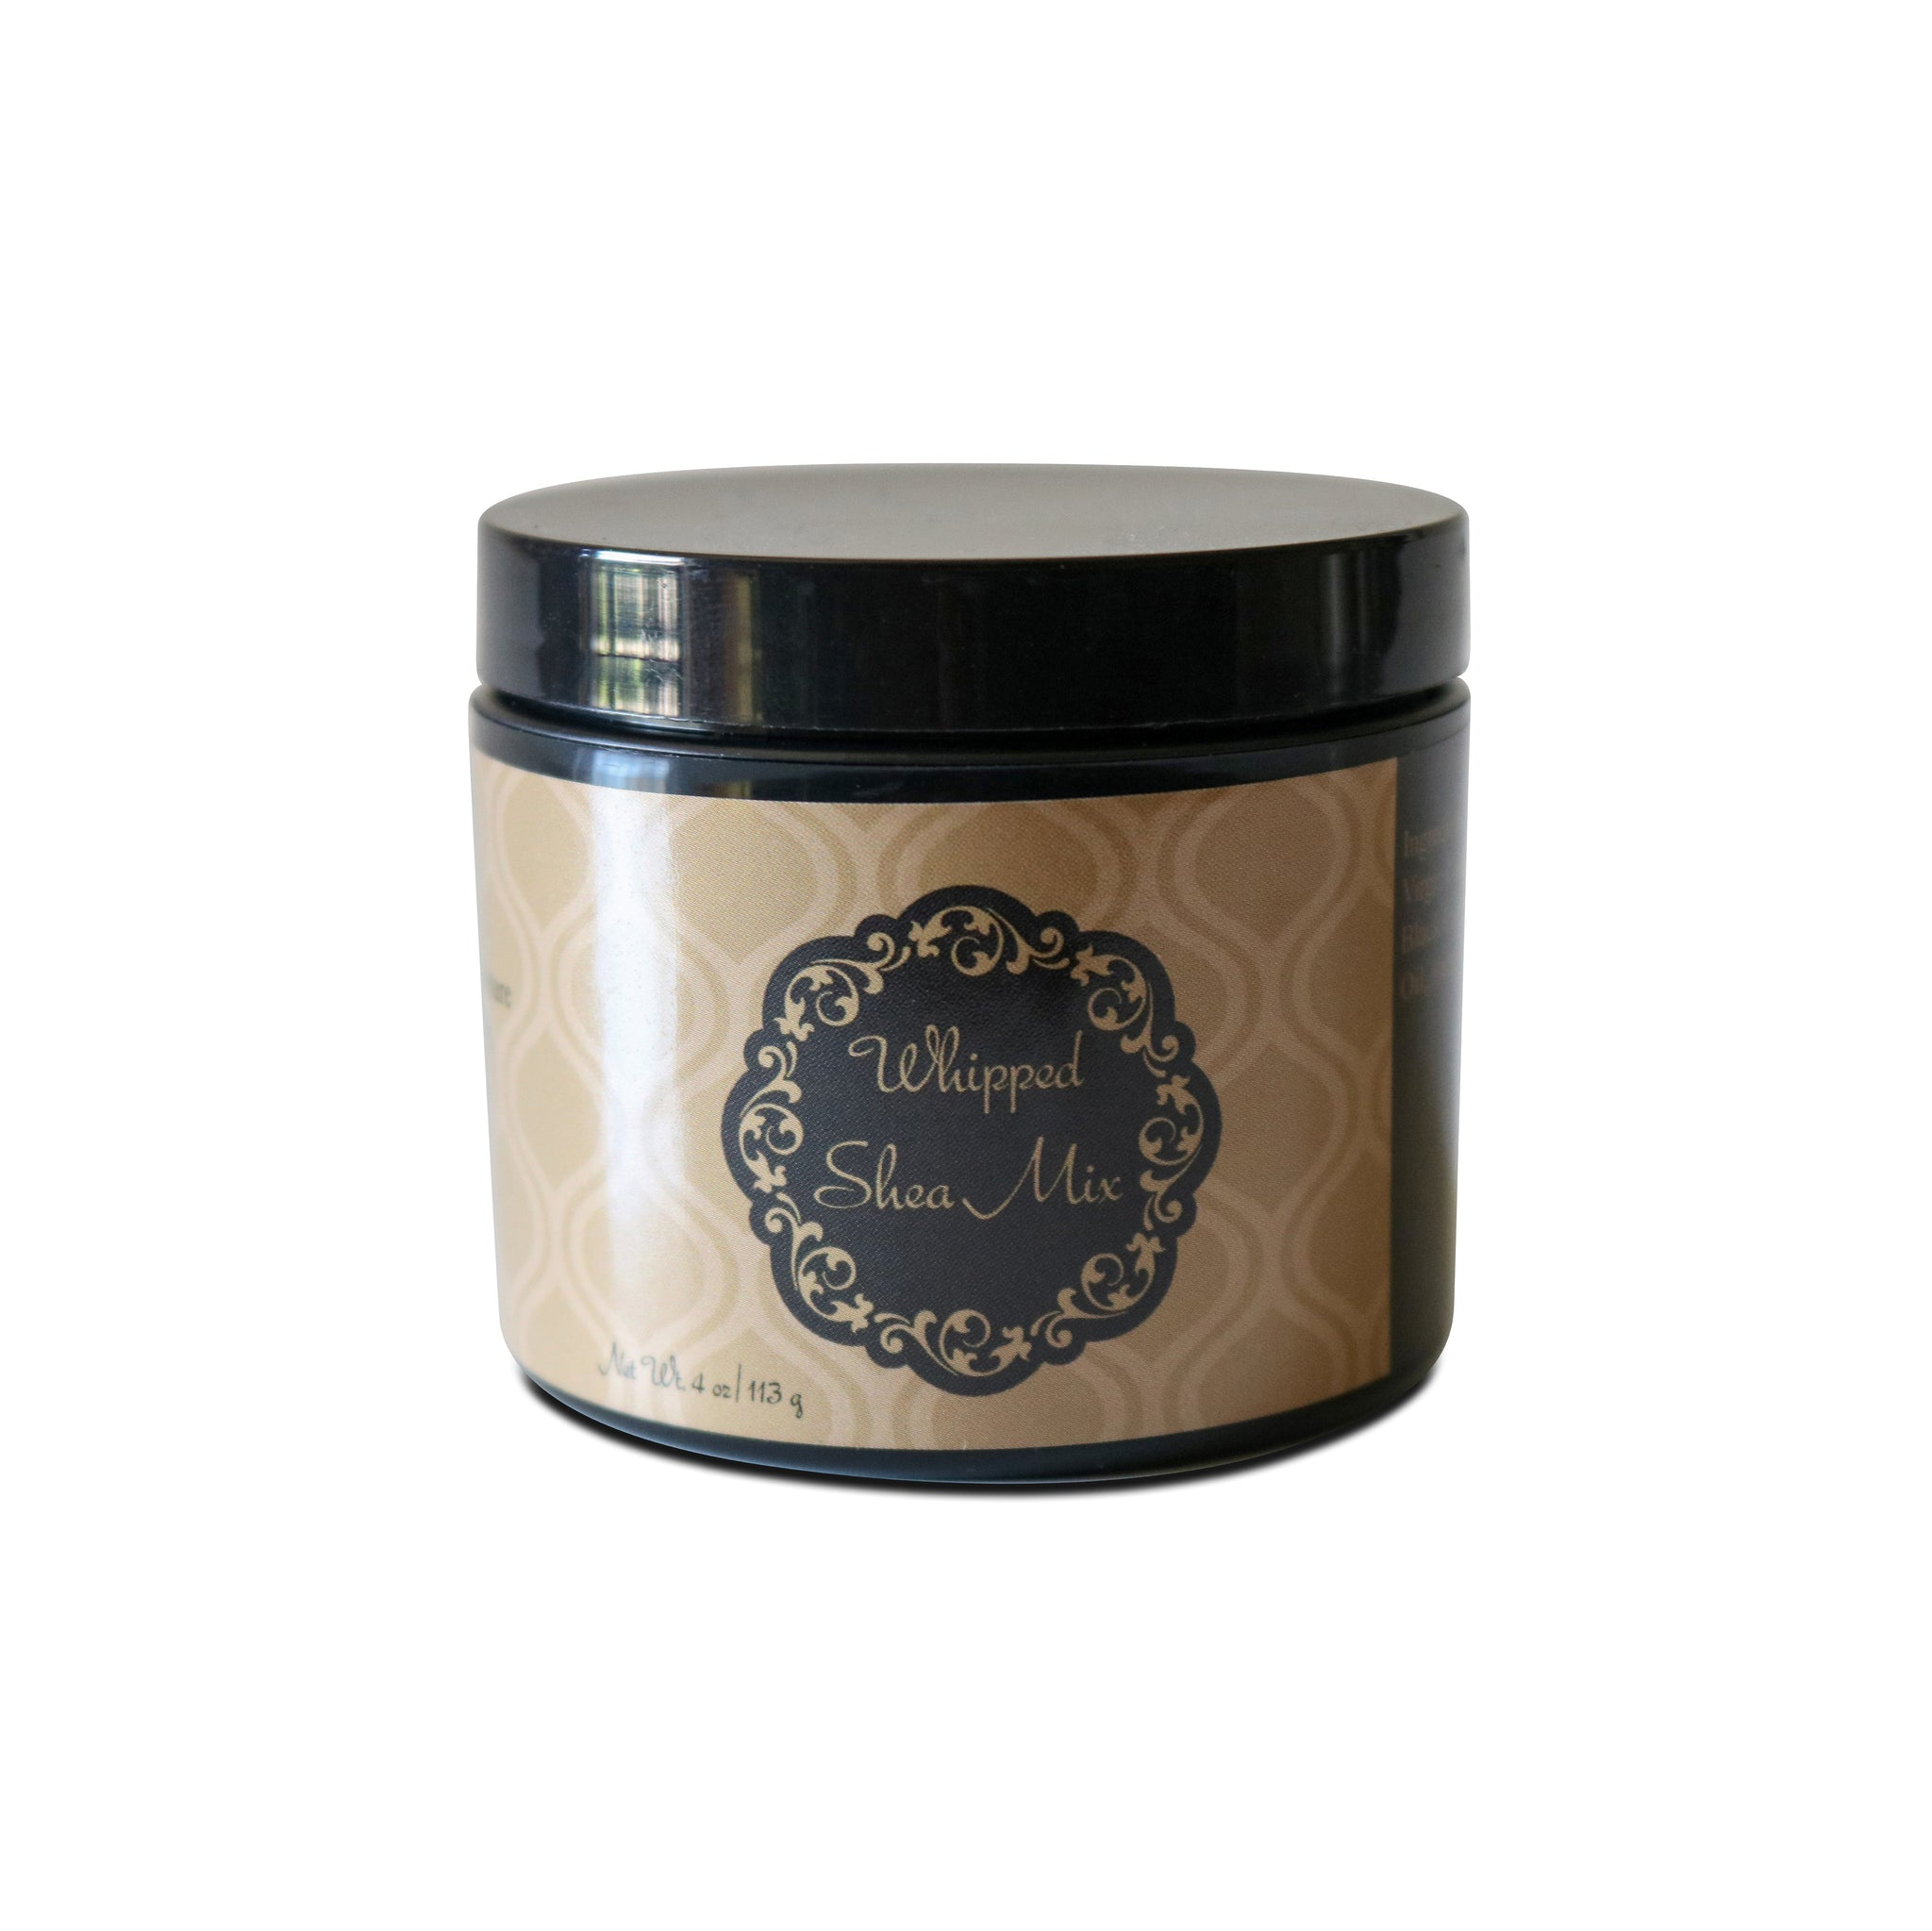 Whipped Shea Mix - 8 oz